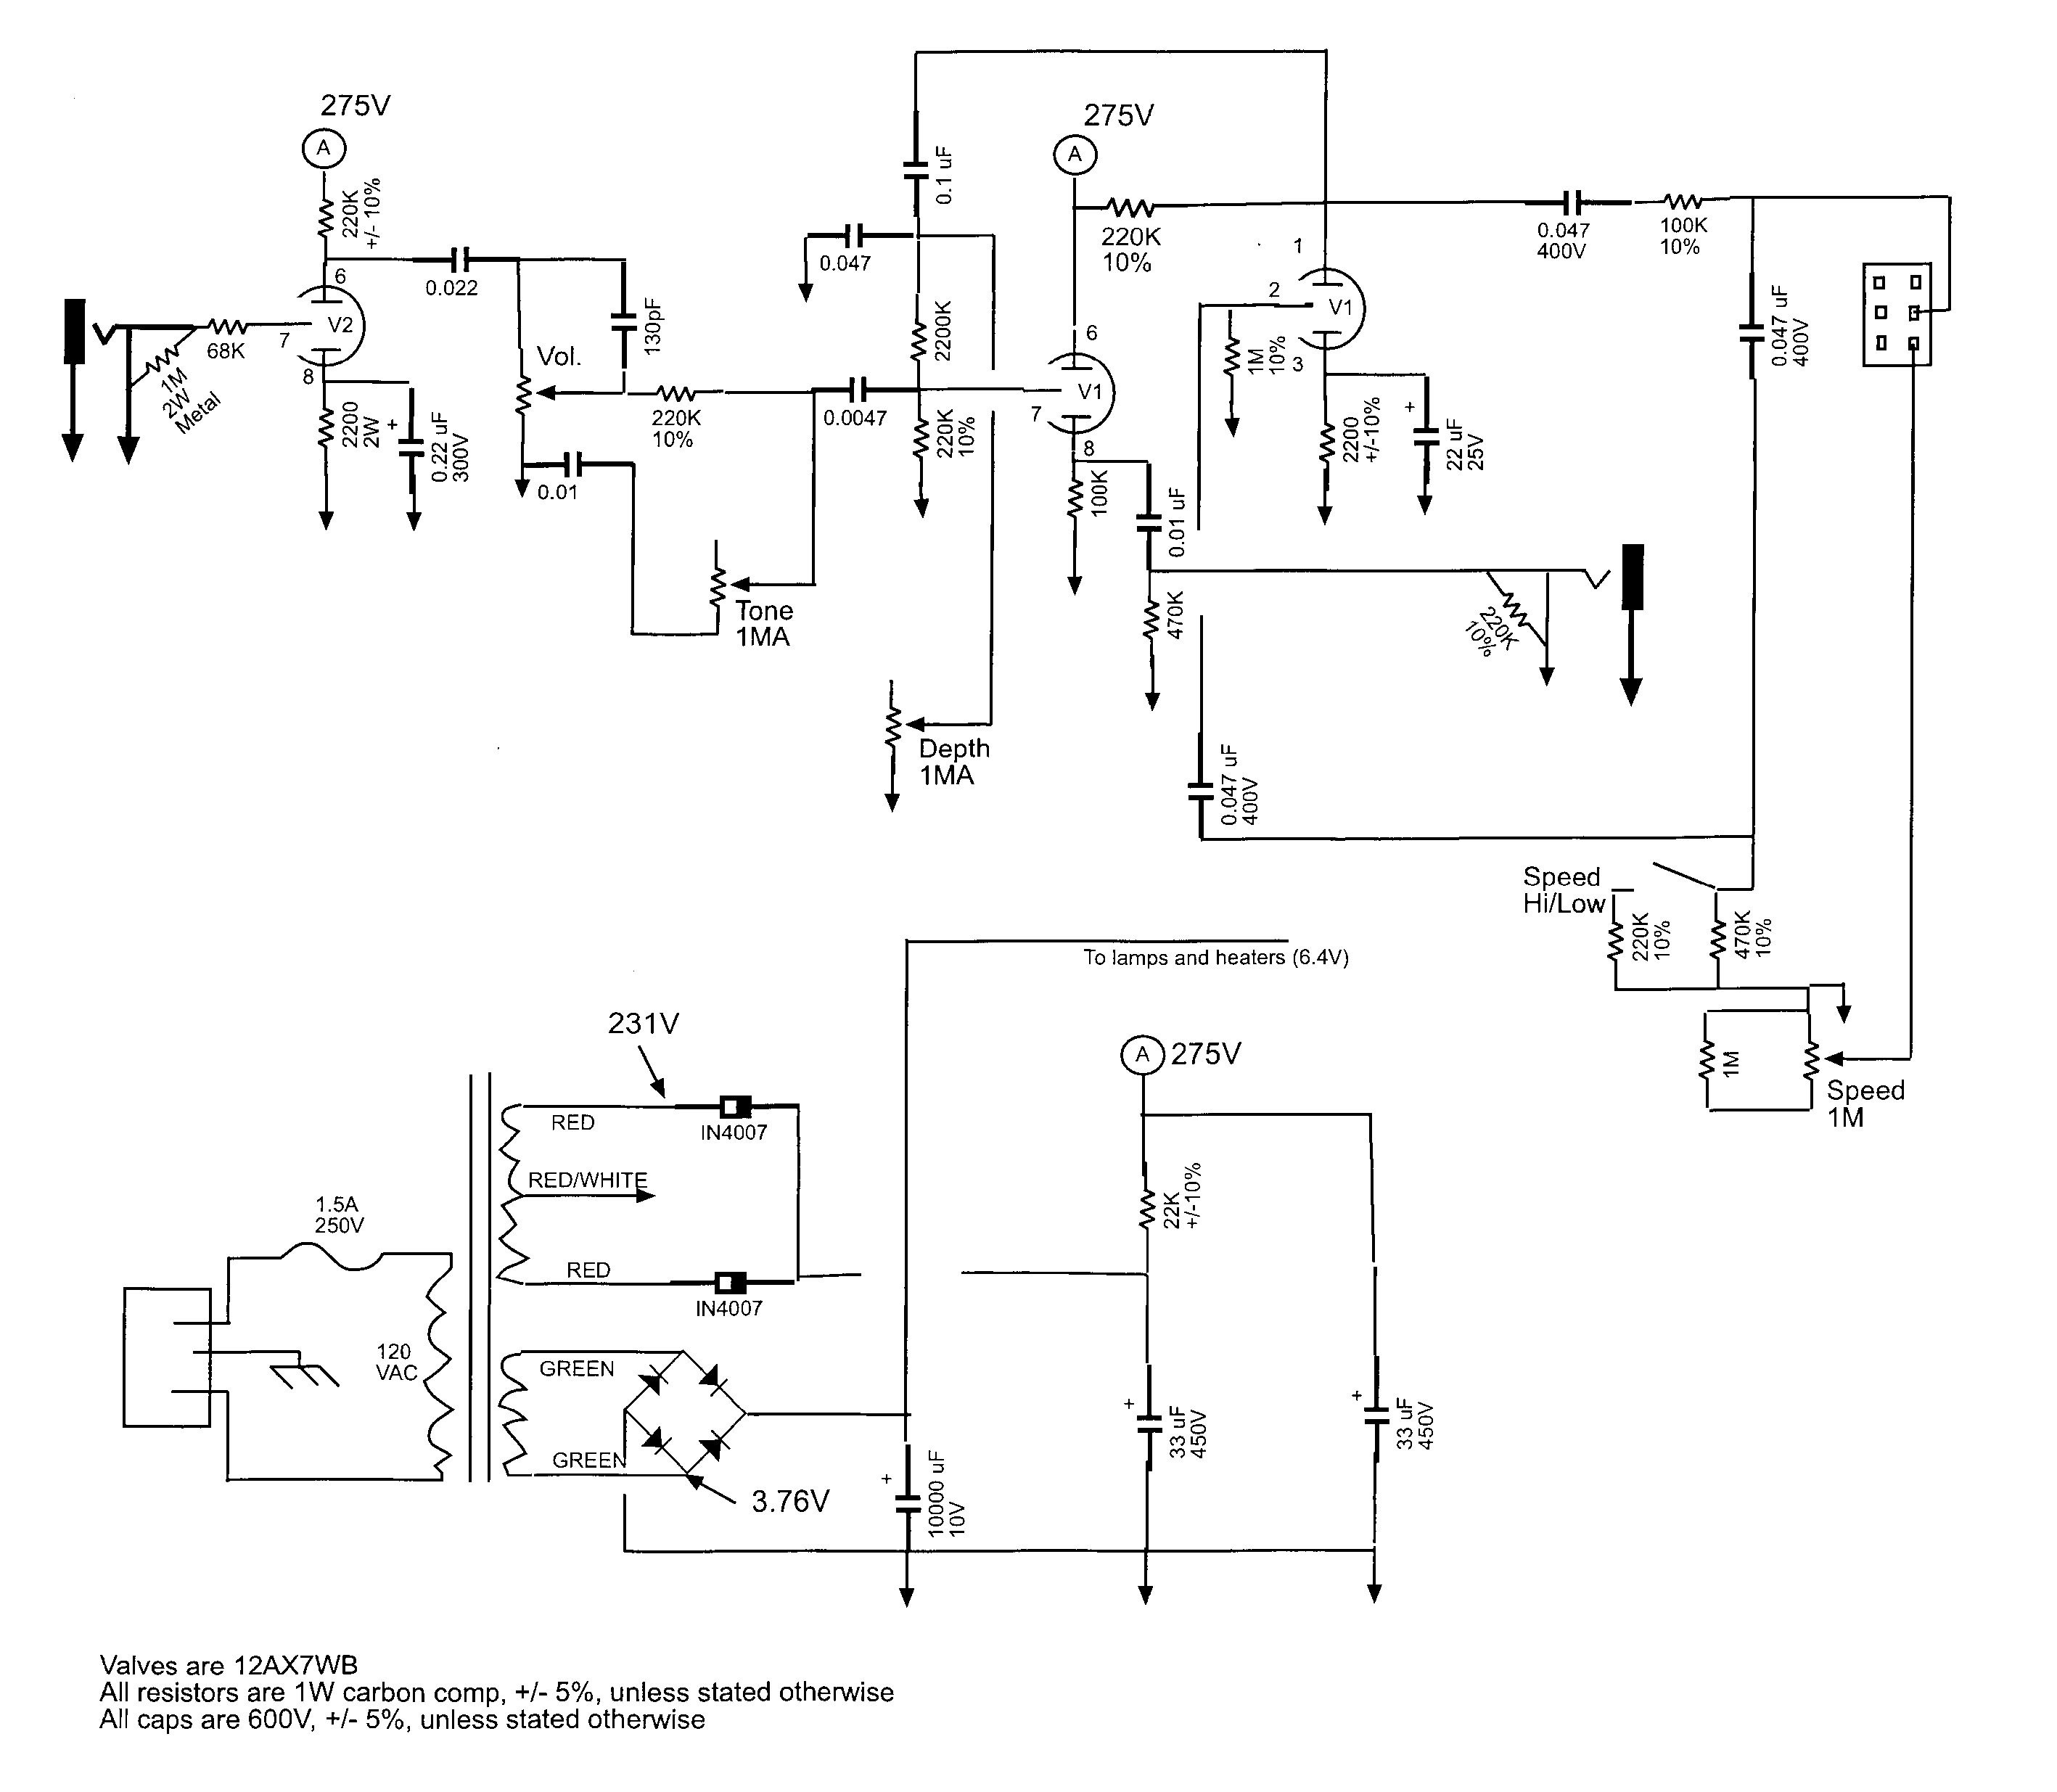 Matchless Spitfire Schematic Diagrams Kendrick Amp Schematics Carvin Mts 3200